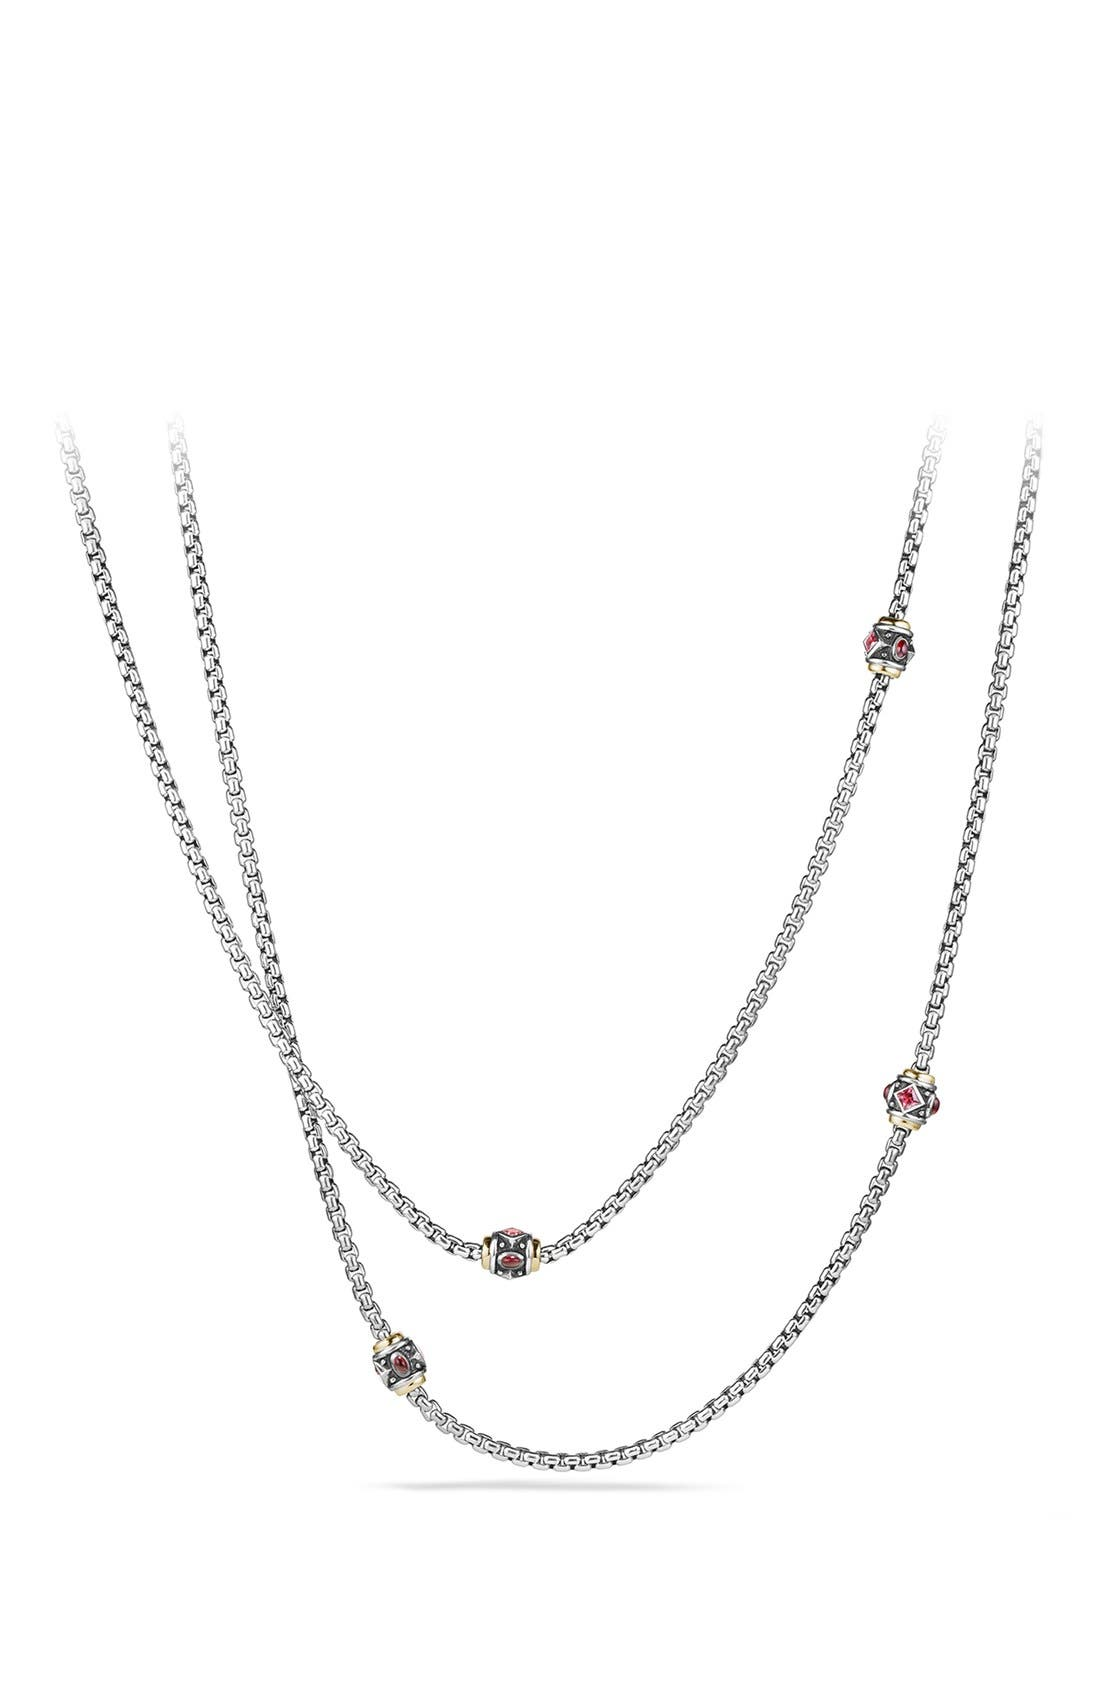 'Renaissance' Necklace with Semiprecious Stone and 18k Gold,                         Main,                         color, 650